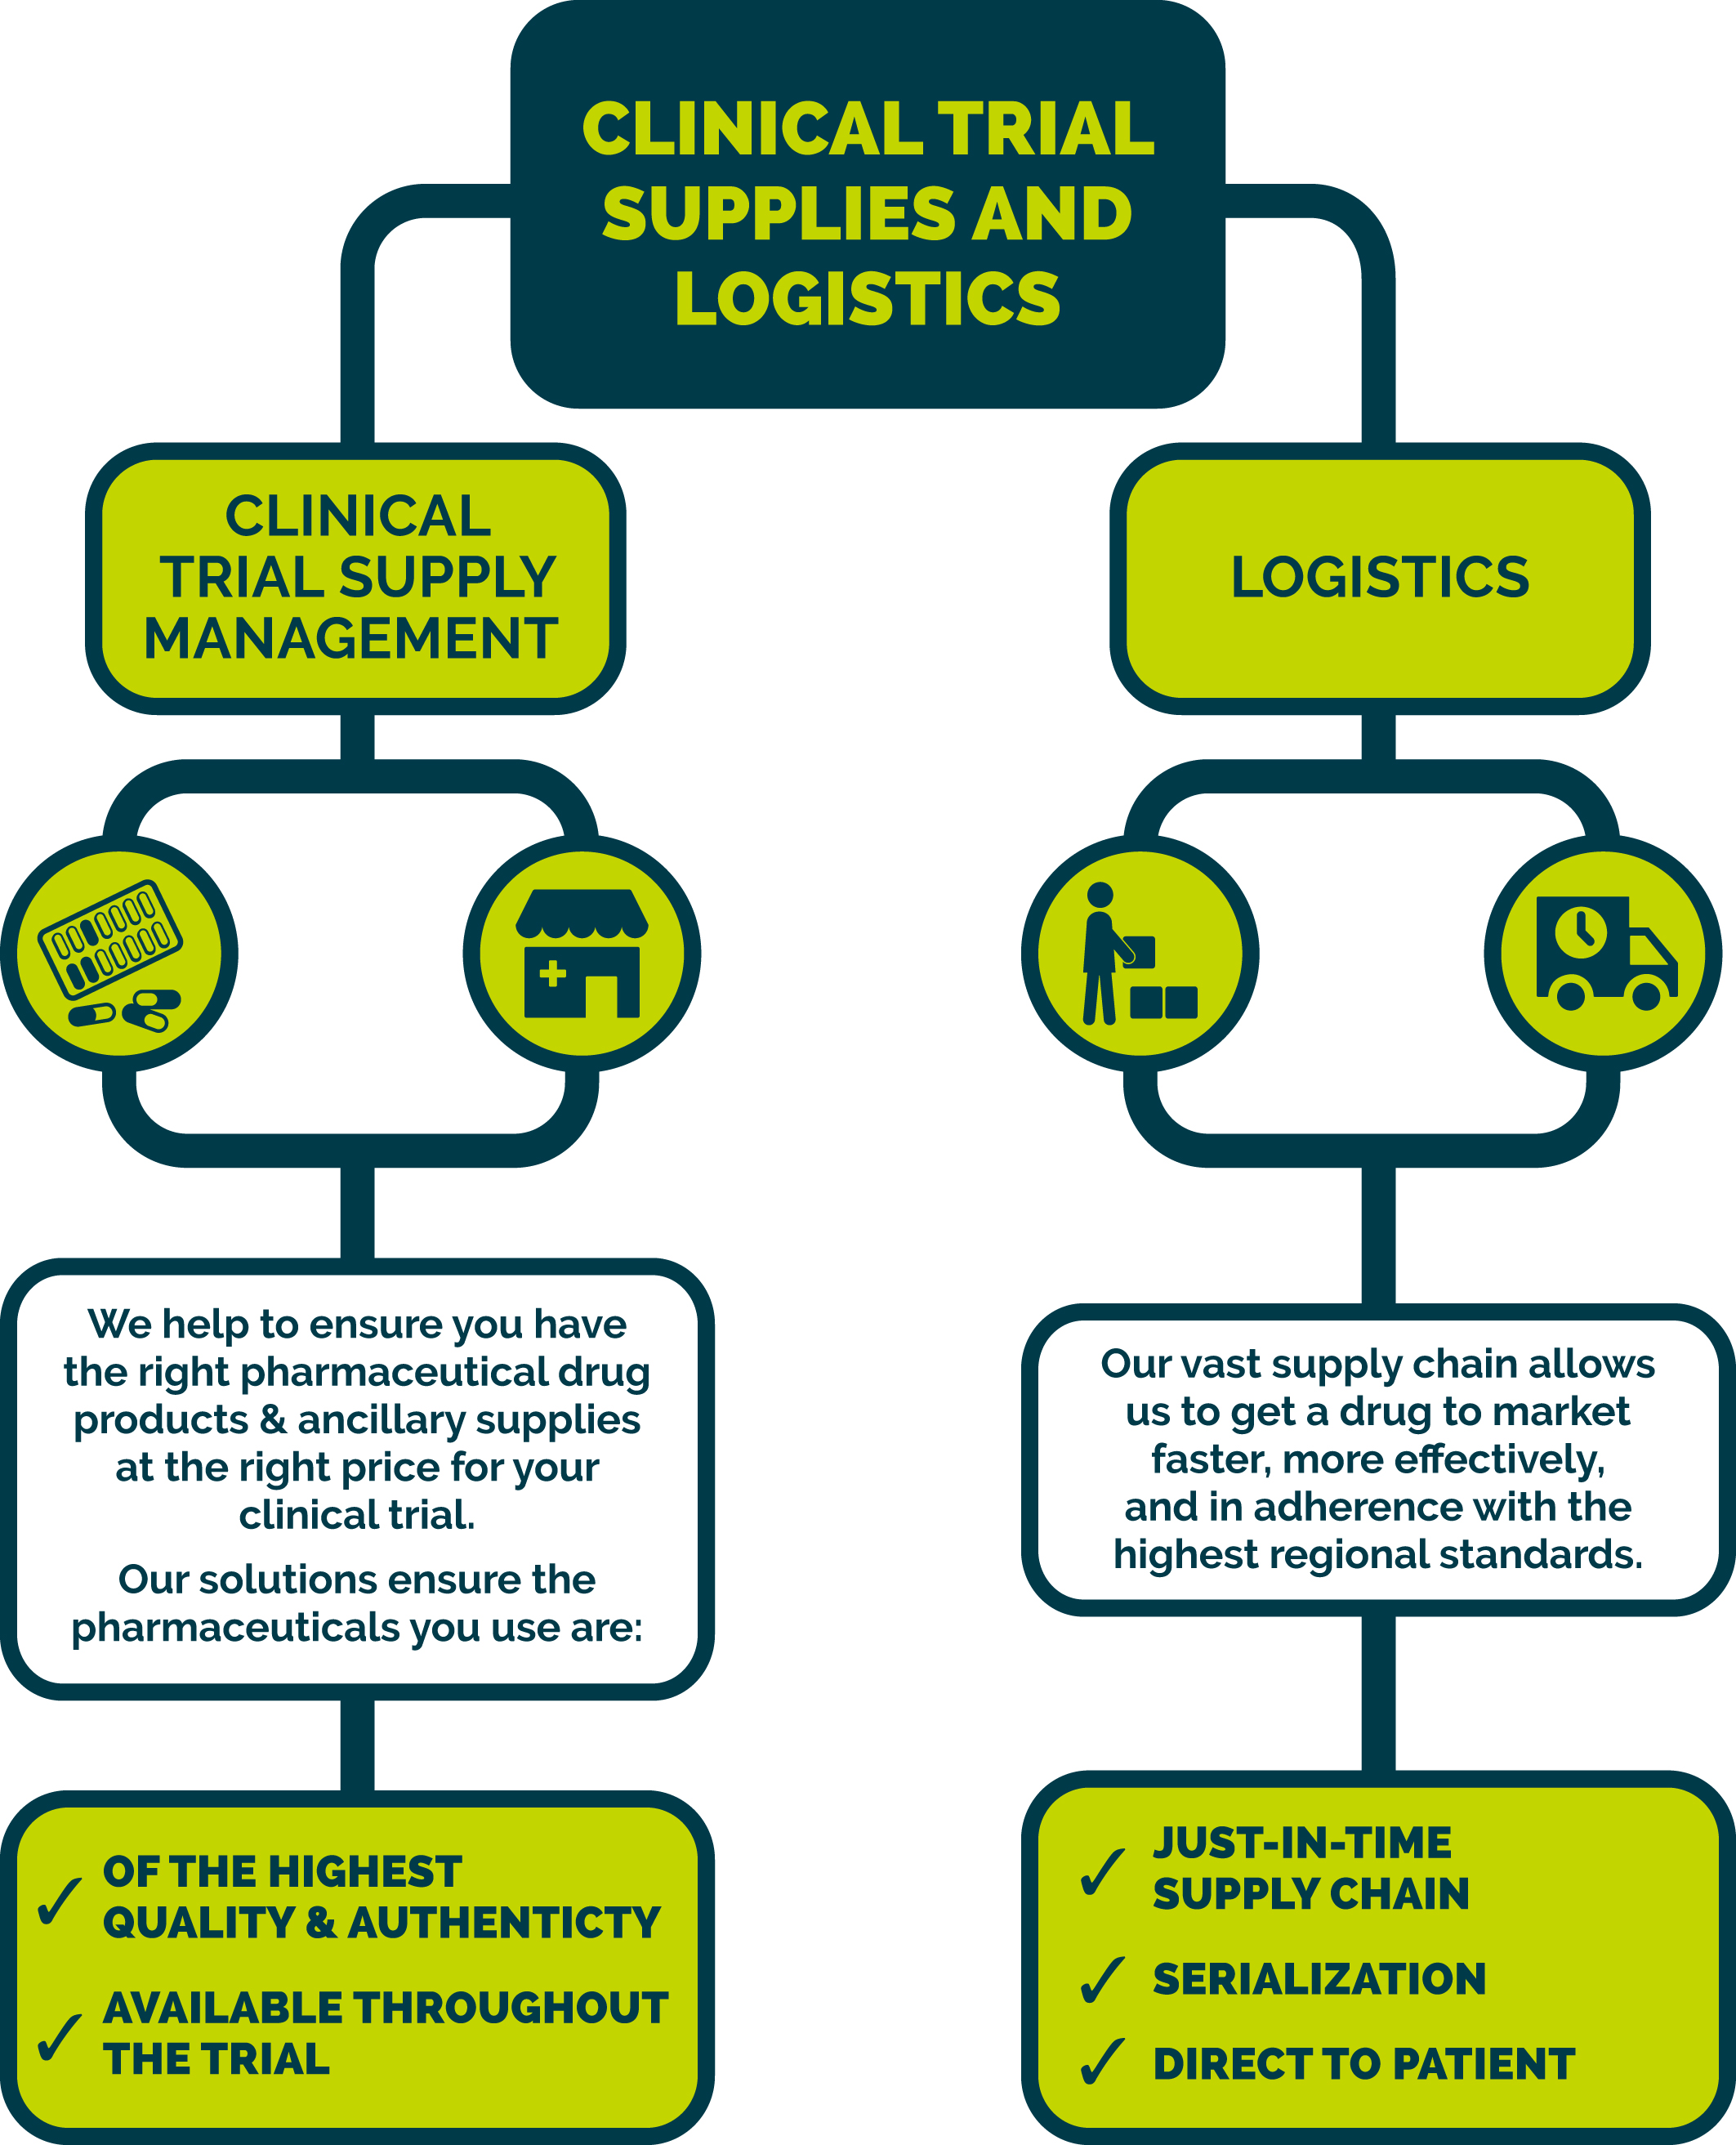 Trial Supplies & Logistics | Zuellig Pharma | Making